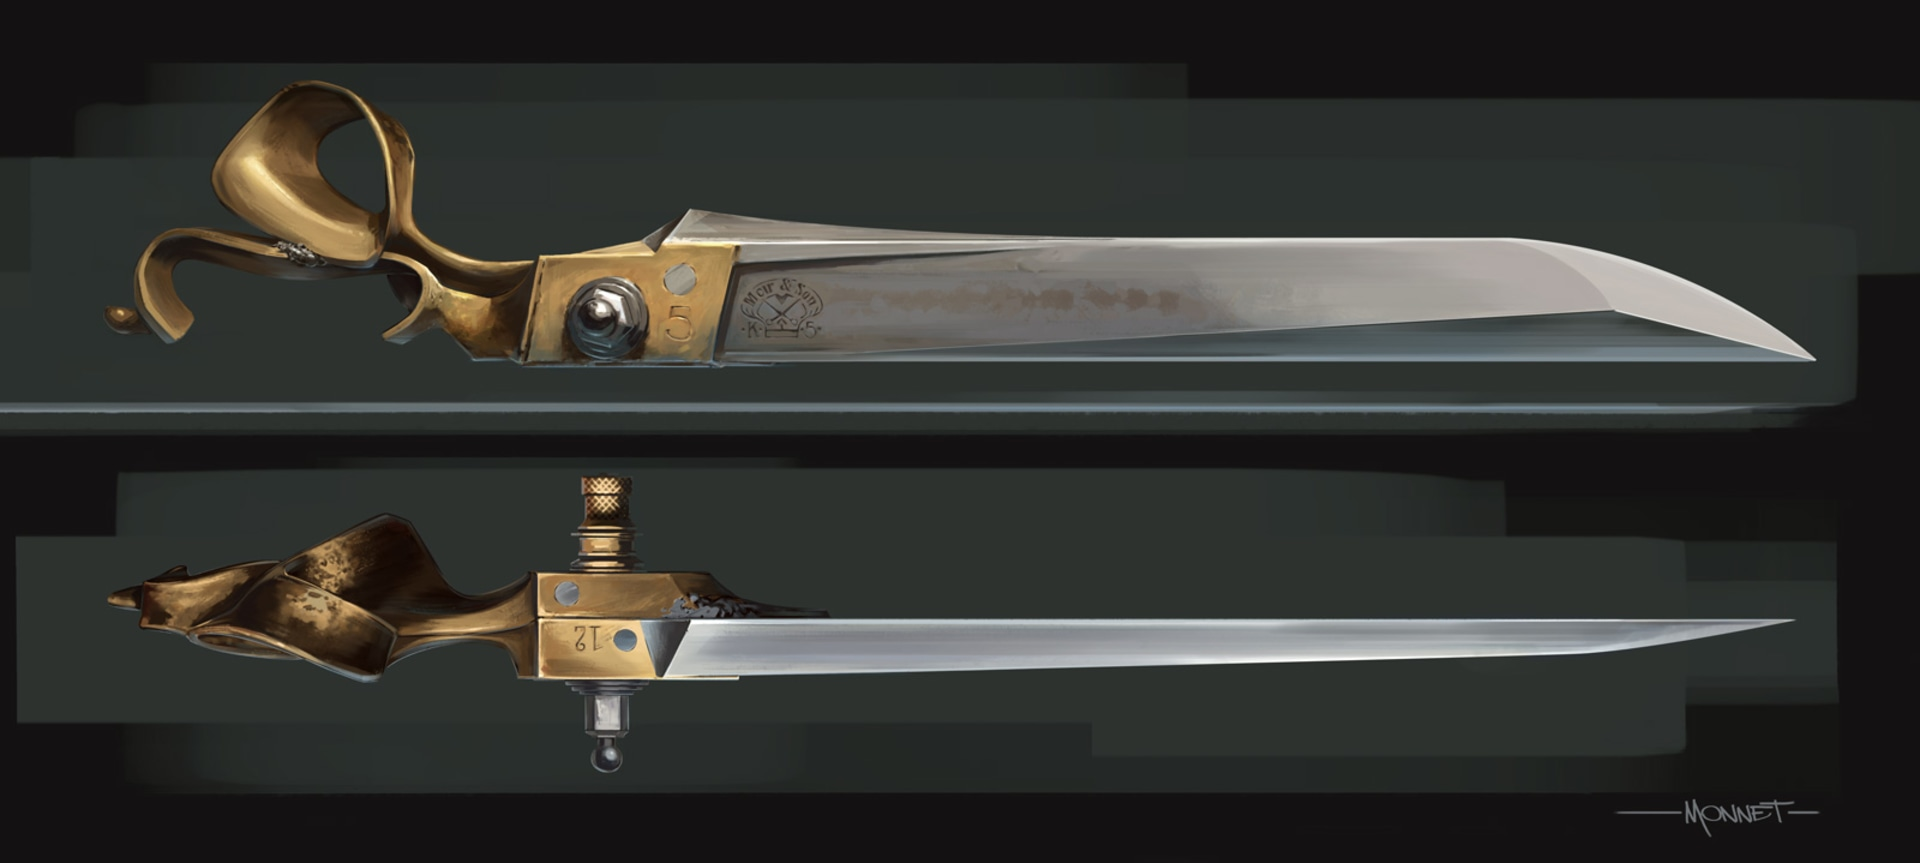 Thug Weapon - Dishonored 2